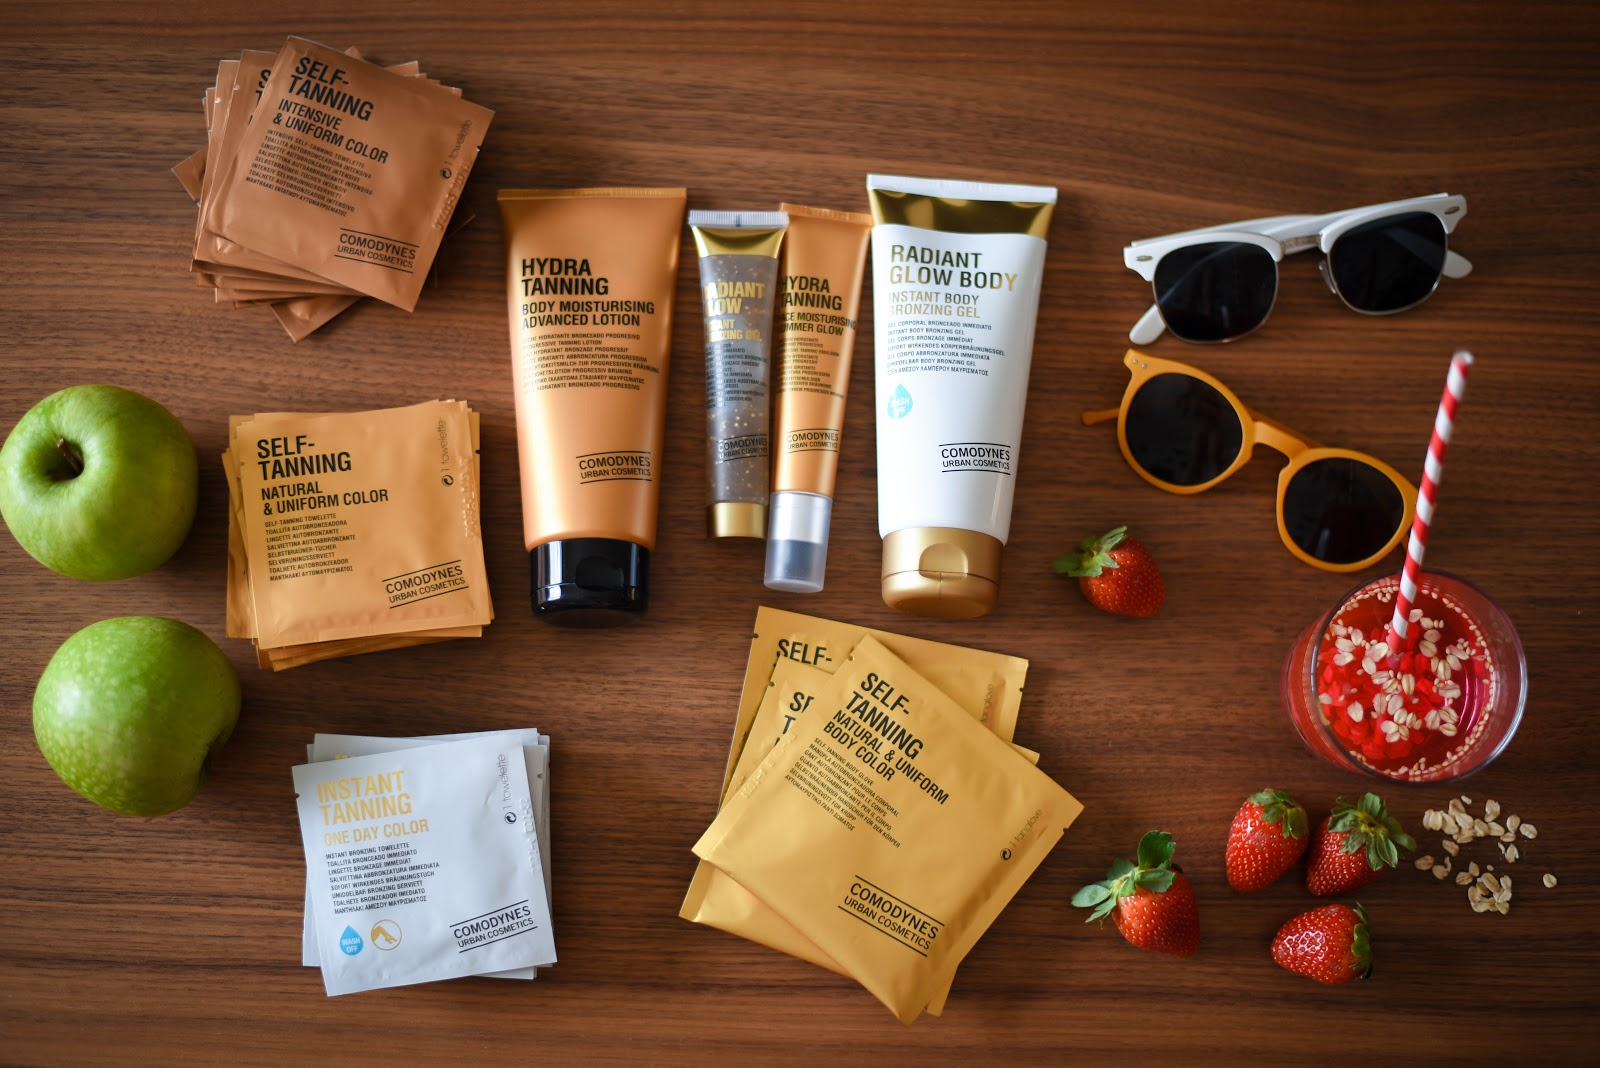 Comodynes tanning products